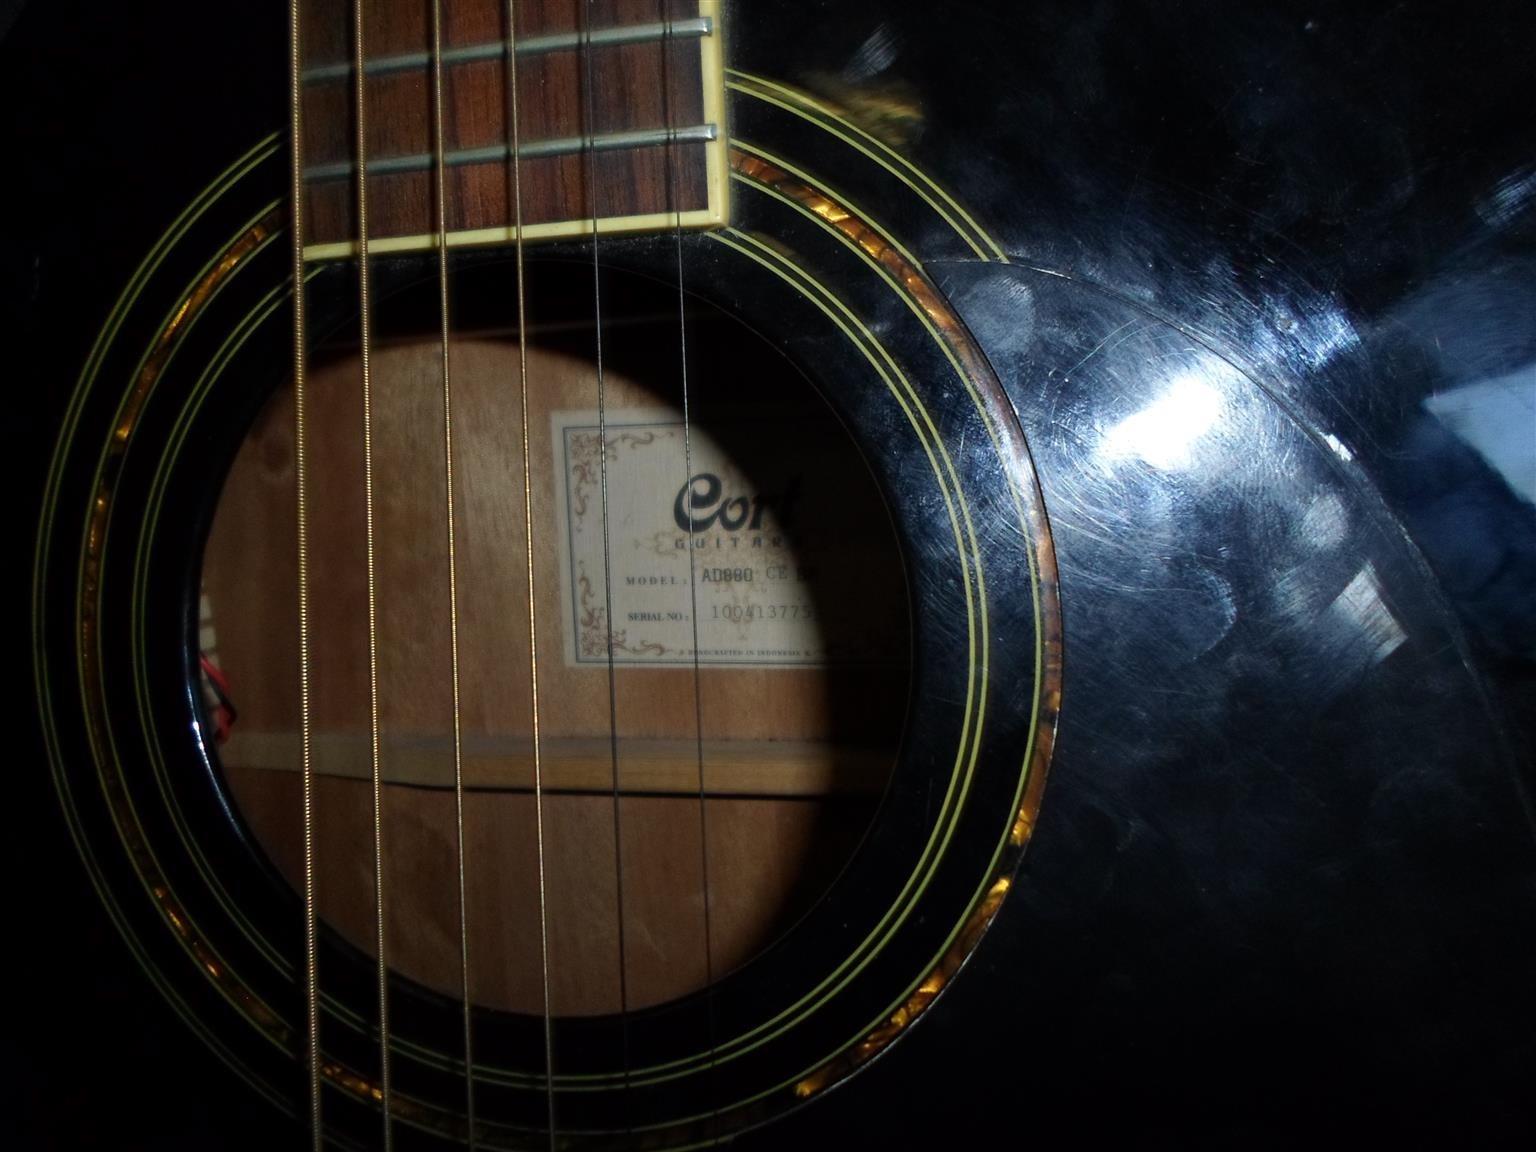 Cort Acoustic Electric Guitar